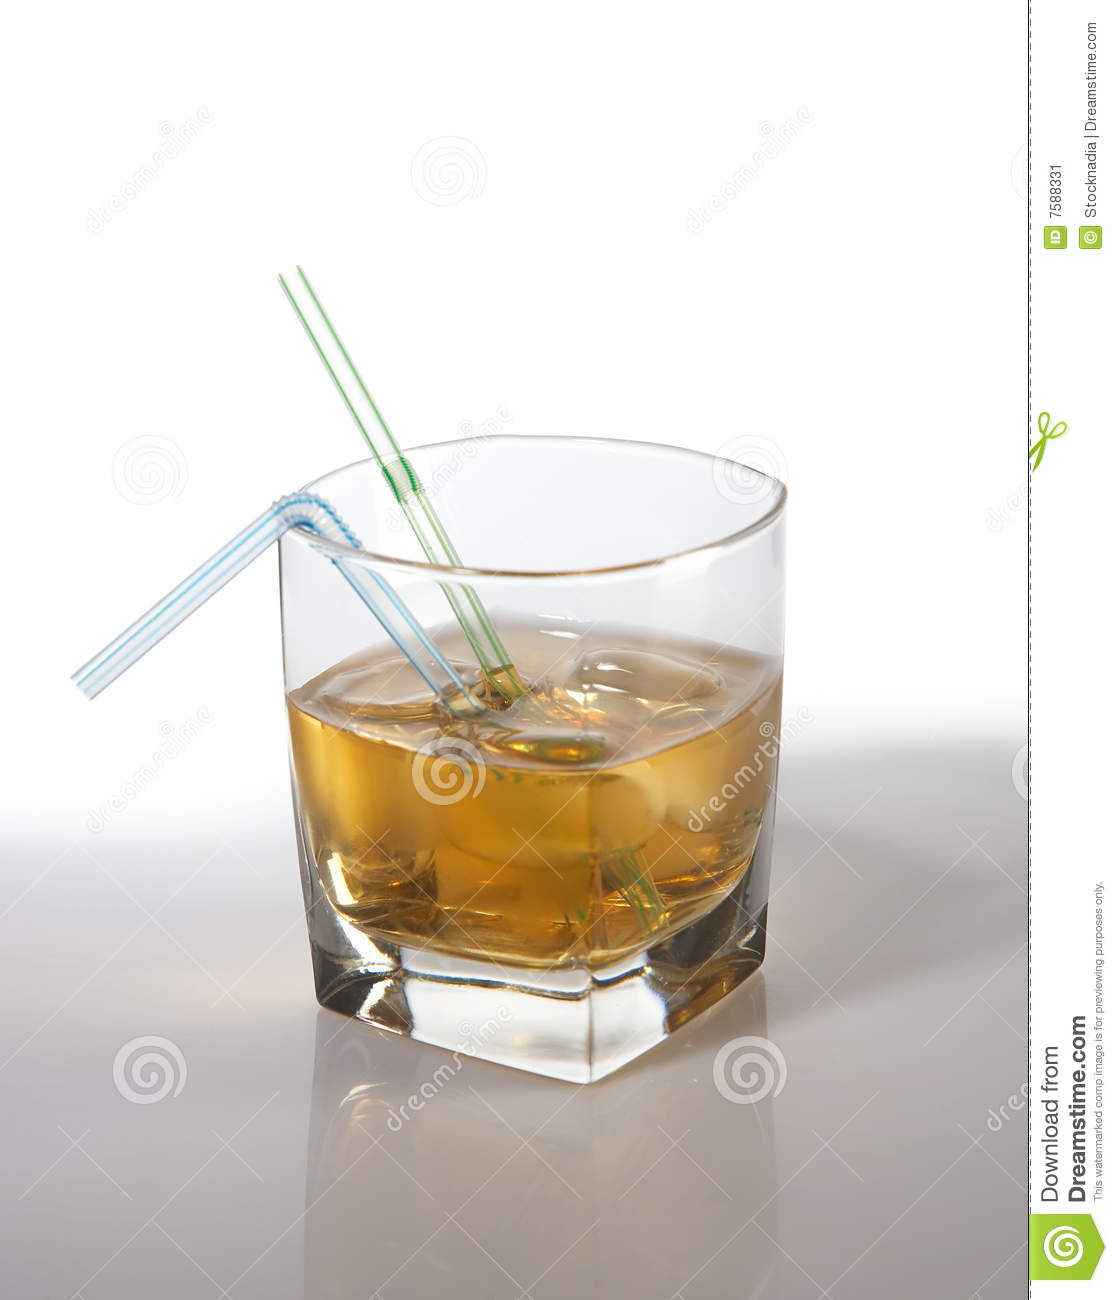 More similar stock images of ` Cocktail with whiskey `